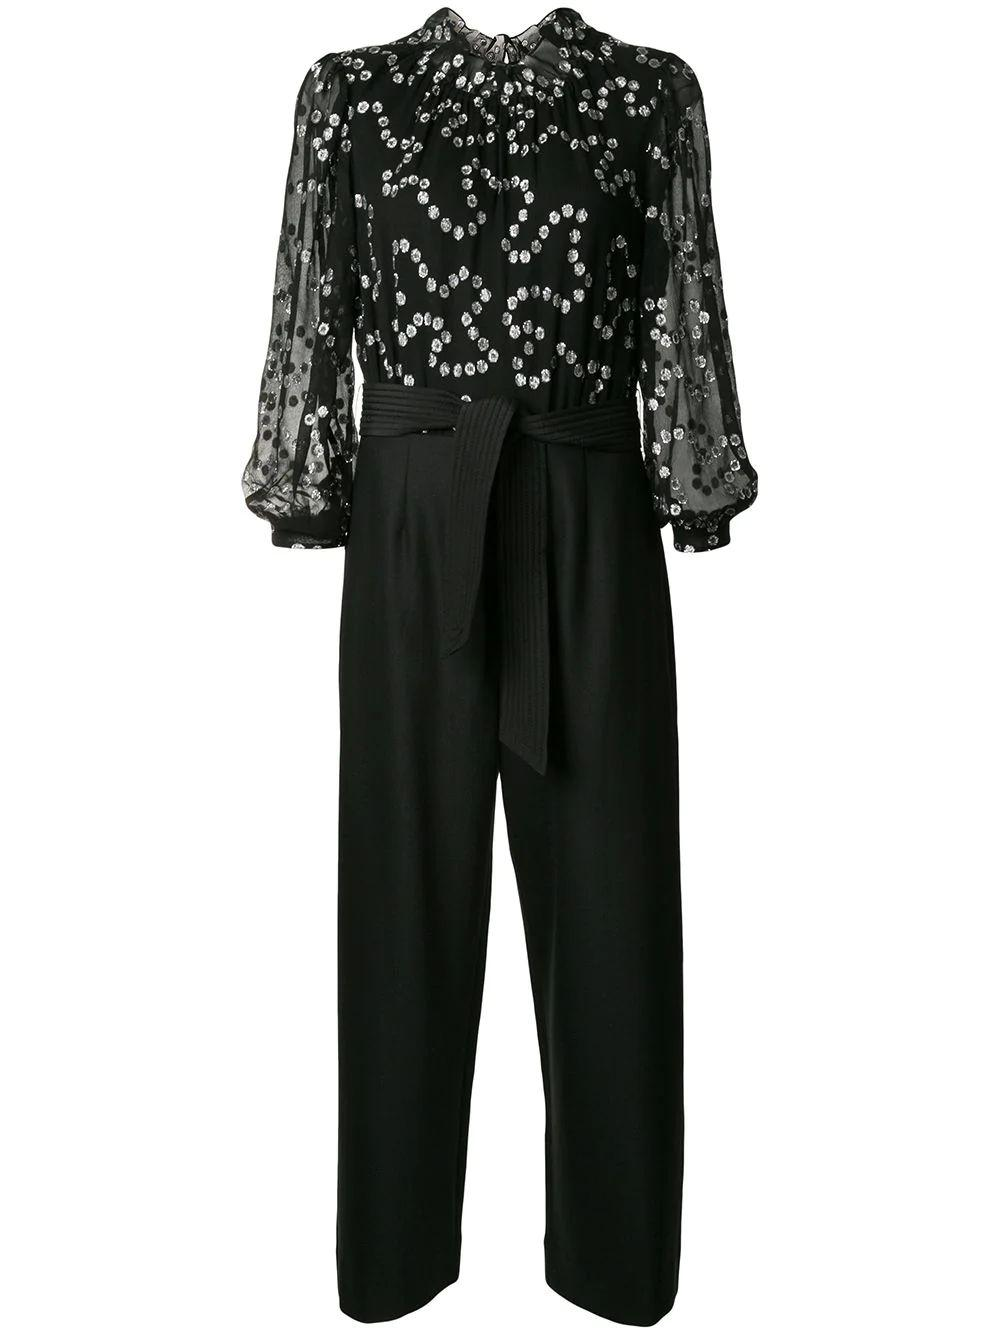 Long Sleeve Metallic Nuage Jumpsuit